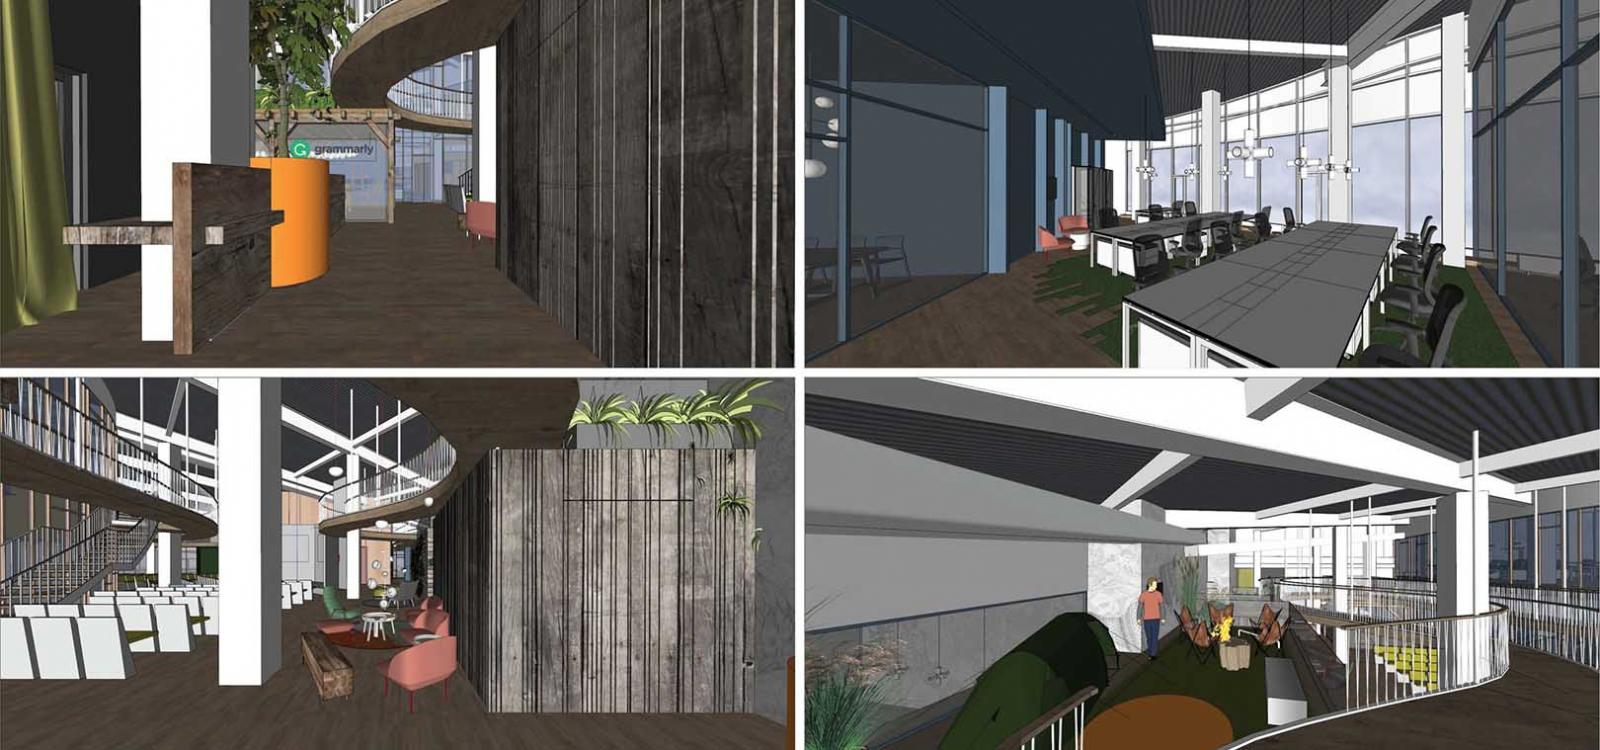 SketchUp models for commercial interior design